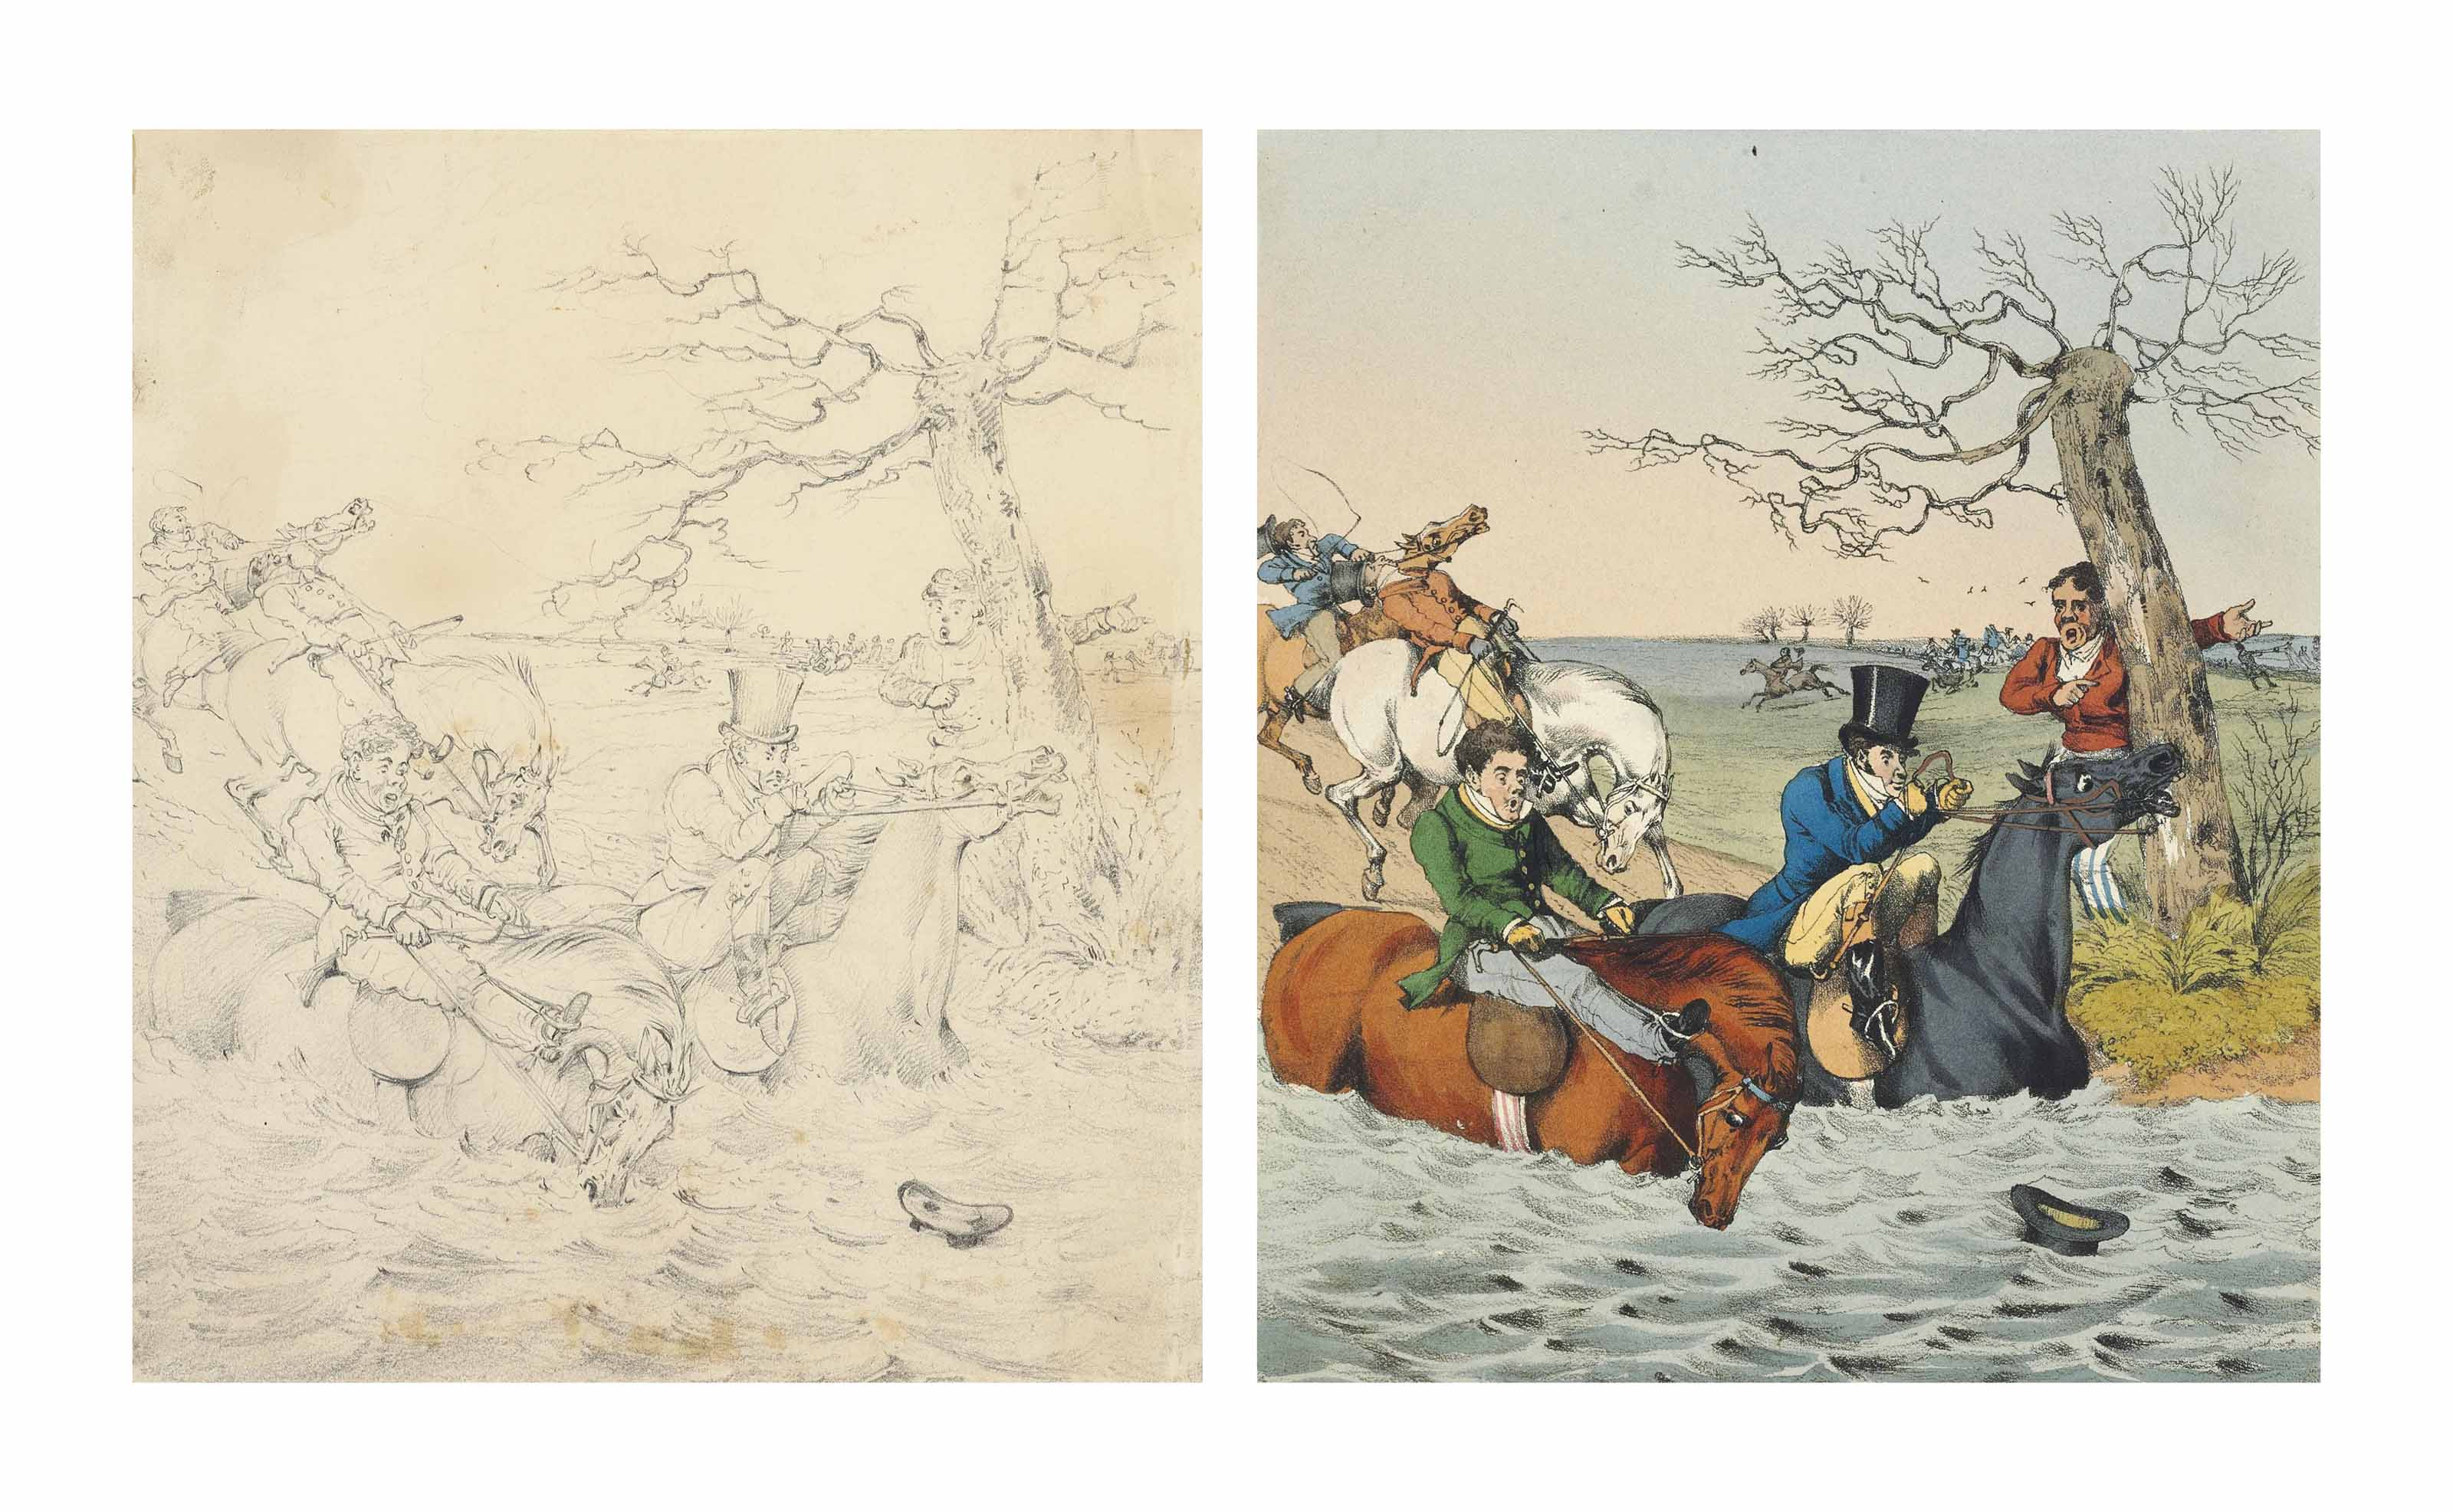 ALKEN, Henry. Ideas, Accidental and Incidental to Hunting and Other Sports; caught in Leicestershire. London: Thomas M'Lean, plates dated 1826-1830 [watermarked 1829]. 2° (252 x 352mm). Letterpress title and 42 hand-coloured etched plates, interleaved and EXTRA-ILLUSTRATED with three original pencil drawings by Alken (214 x181mm. & 160 x 235mm) for the plates entitled 'Thrown ... Off', 'Fording the Lea', 'I have no Idea what could induce me to follow you', each pasted onto a blank leaf, unsigned. (Slight browning and dust-soiling to drawings, light soiling and spotting of plate margins.) Contemporary half roan over cloth with gilt lettering-piece on upper cover, gilt spine compartments, gilt edges (extremities rubbed, covers scuffed, some loss of cloth on upper cover). Provenance: Stansfeld Manor House (bookplate) -- Prince Henry, Duke of Gloucester (bookplate; his sale, Christie's London, 26-27 January 2006, lot 619).